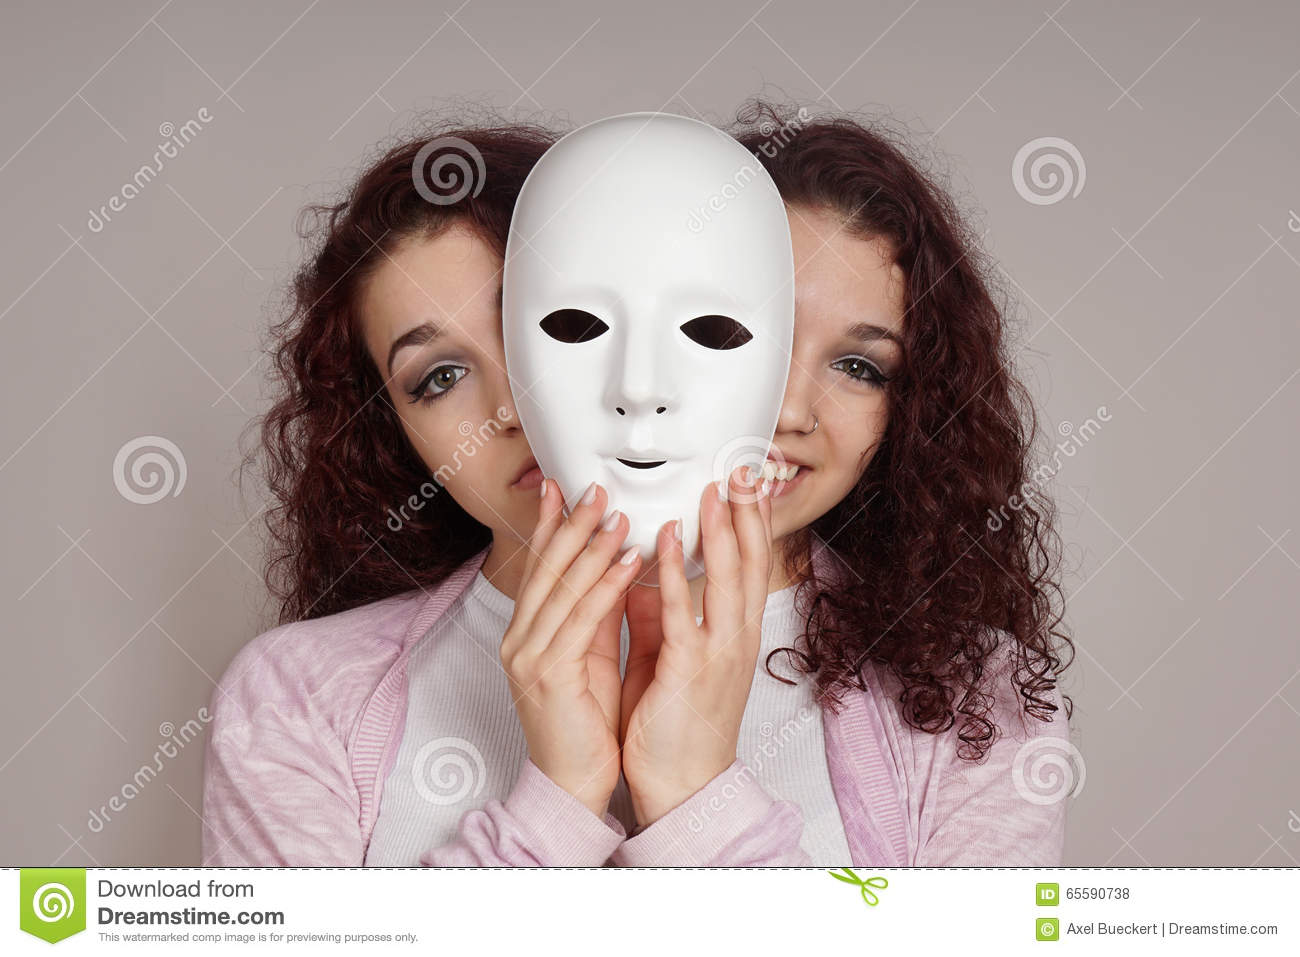 Two-faced woman manic depression concept